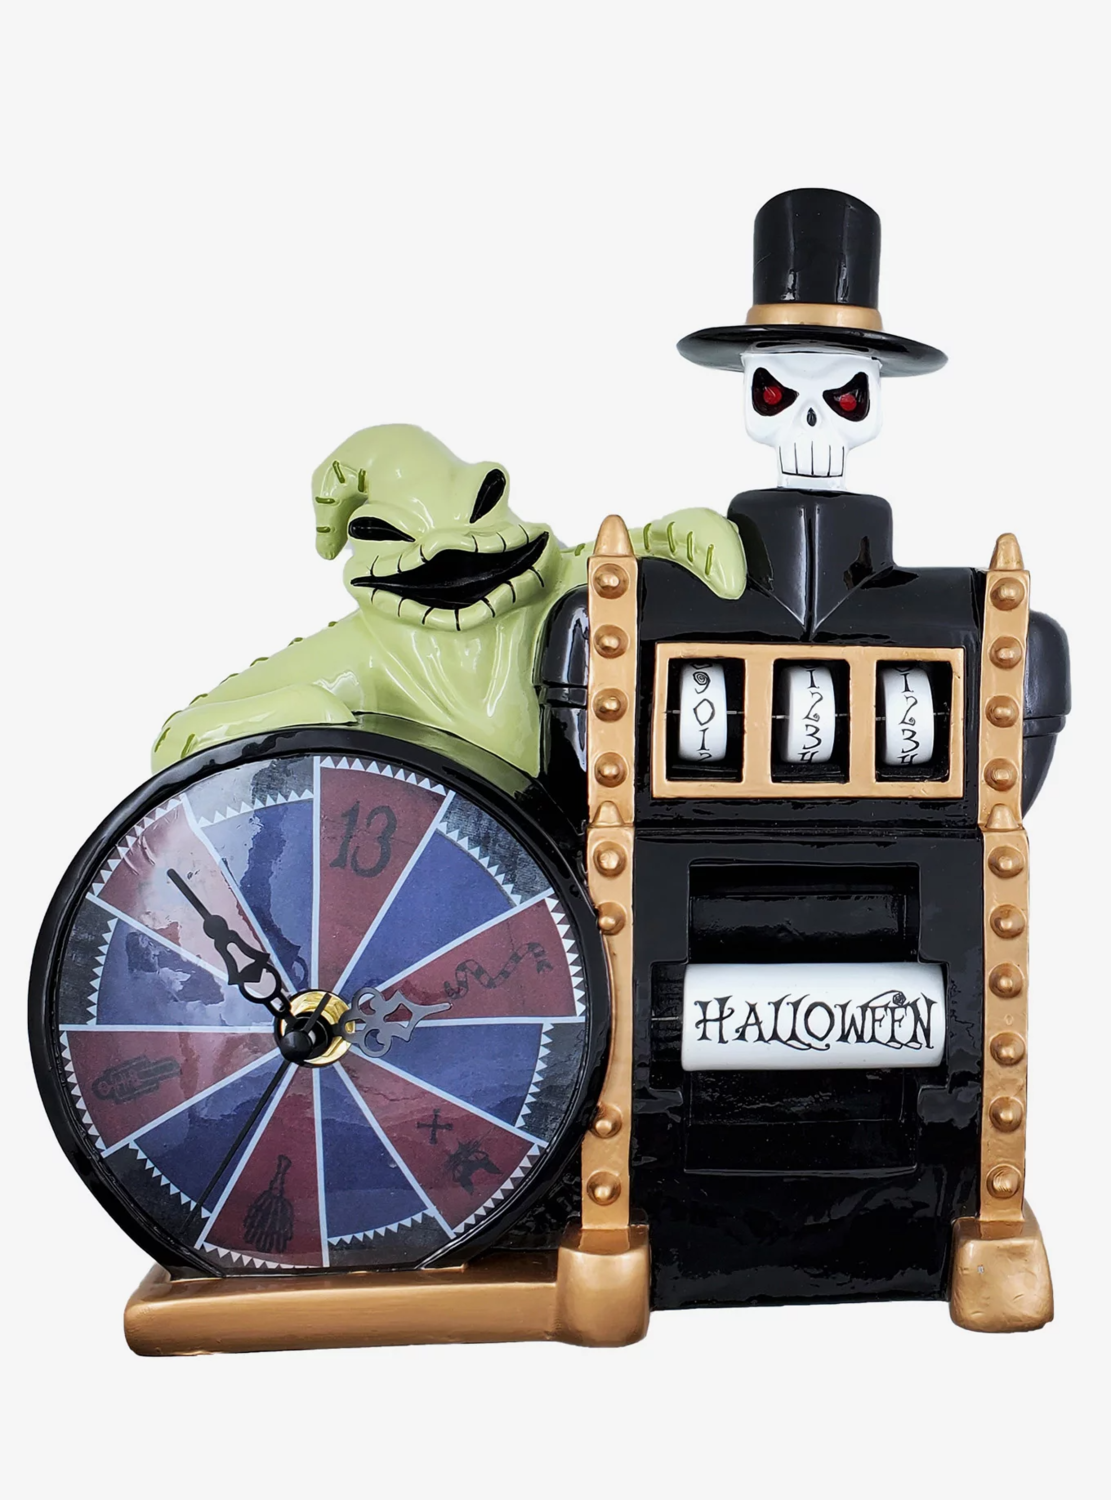 Reloj Jack Nightmare Halloween